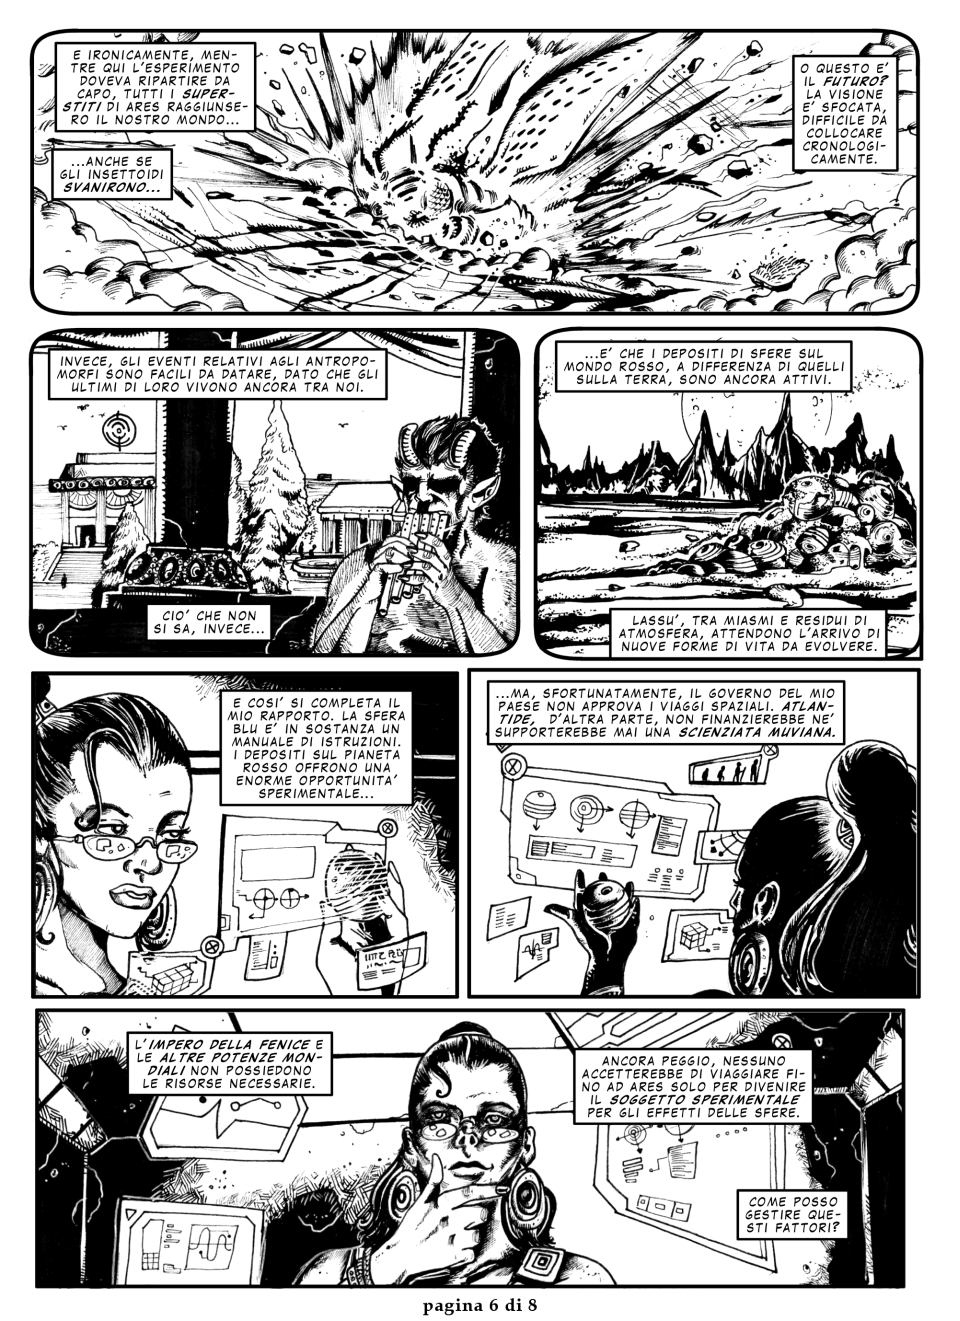 Get a Life 14 - pagina 6 by martin-mystere